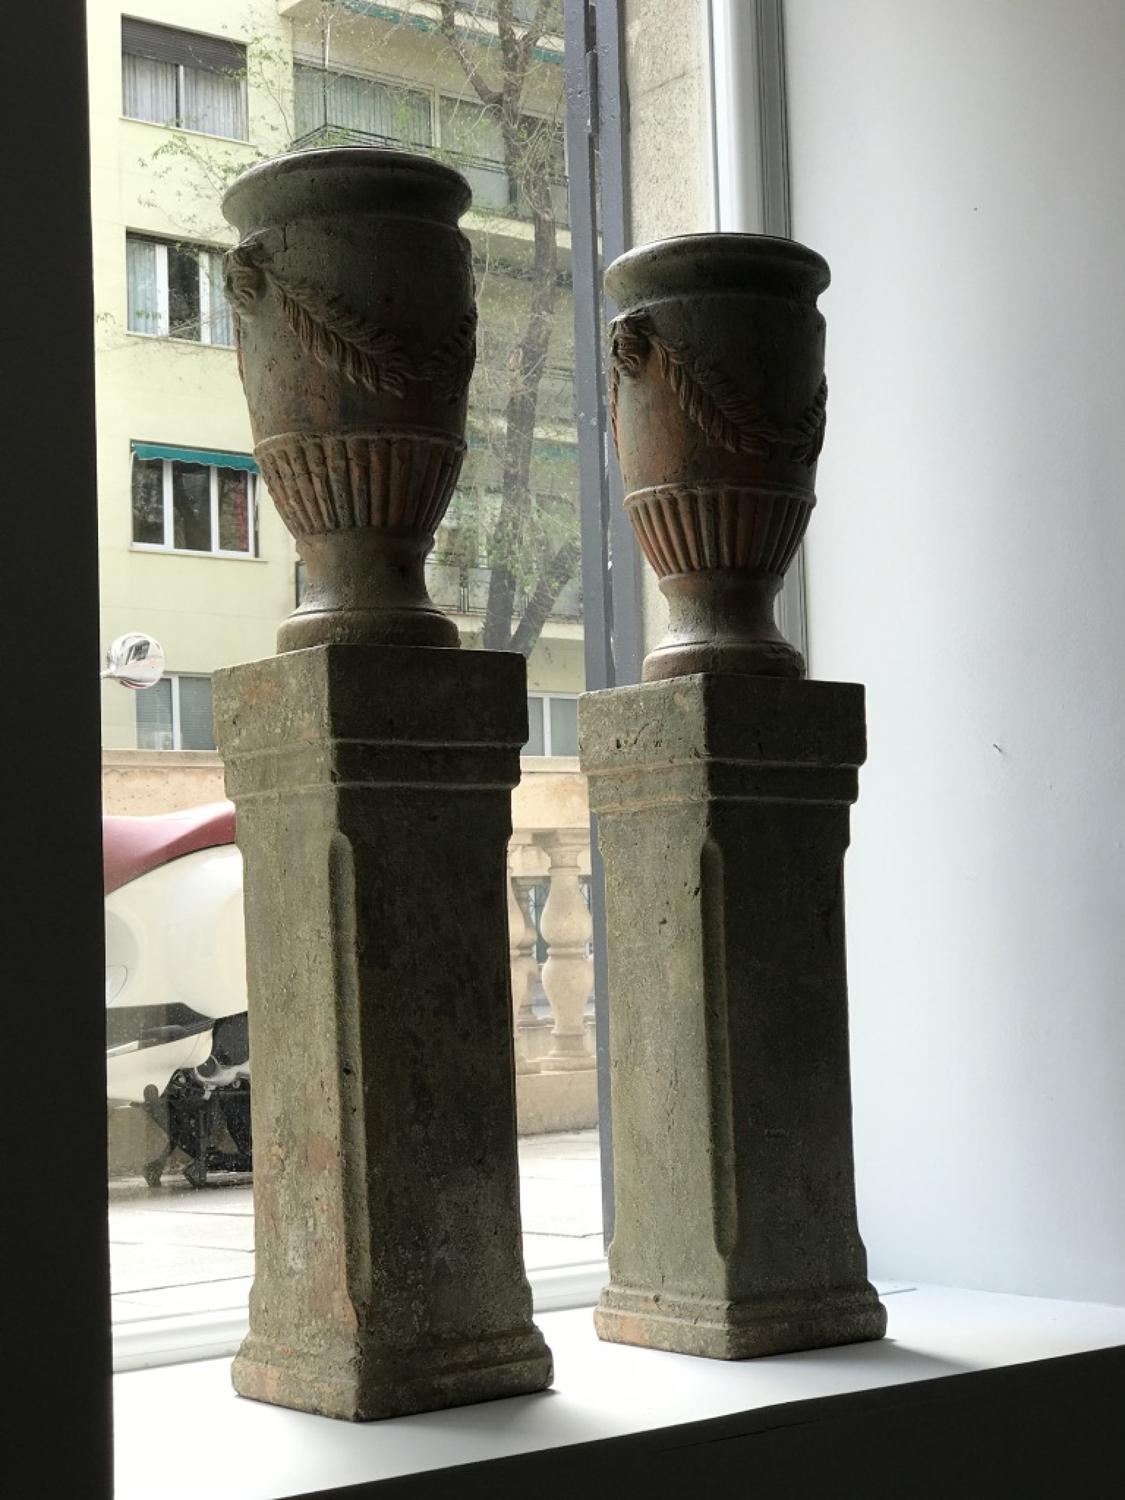 Pair of French Terracotta Urns on Plinths, 19th Century